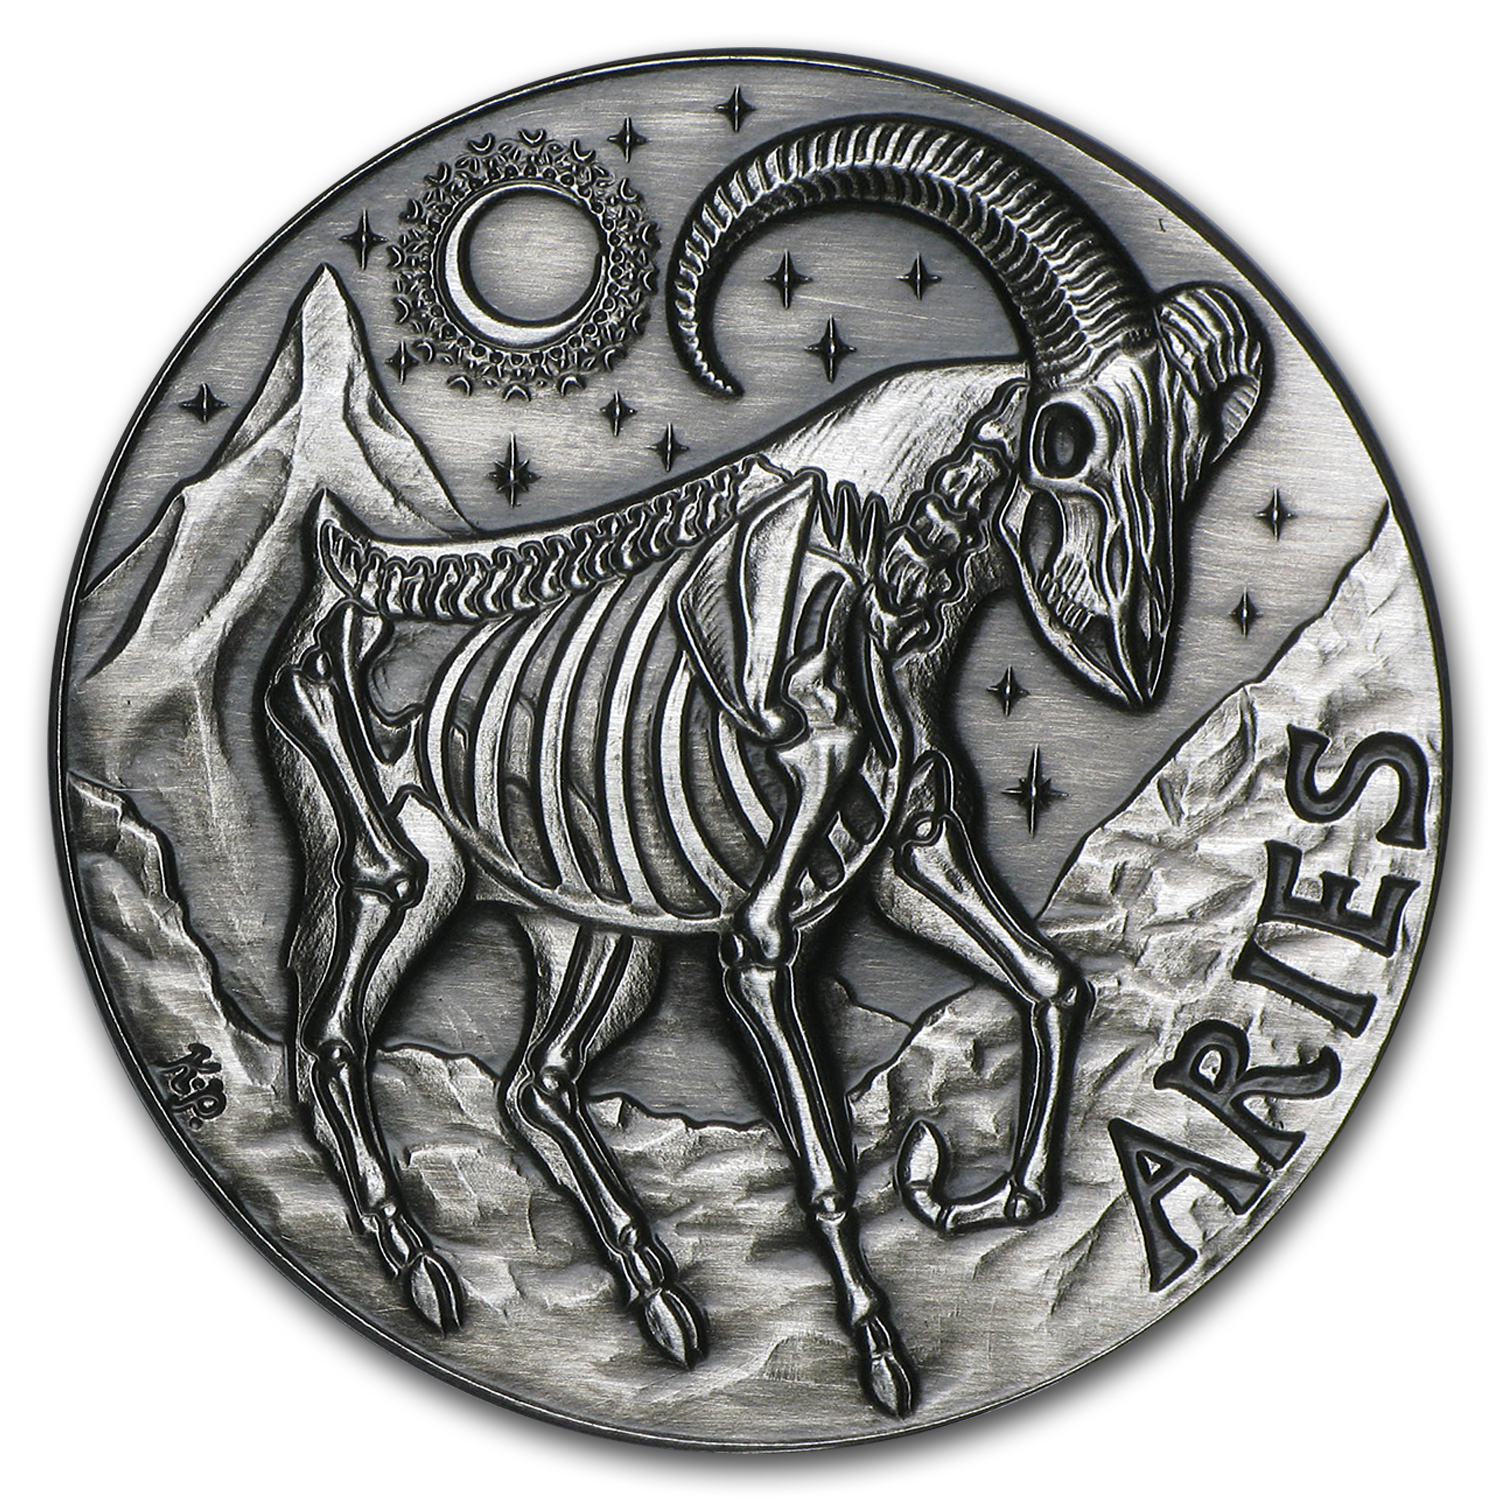 1 oz Silver Round - Aries - Zodiac Series